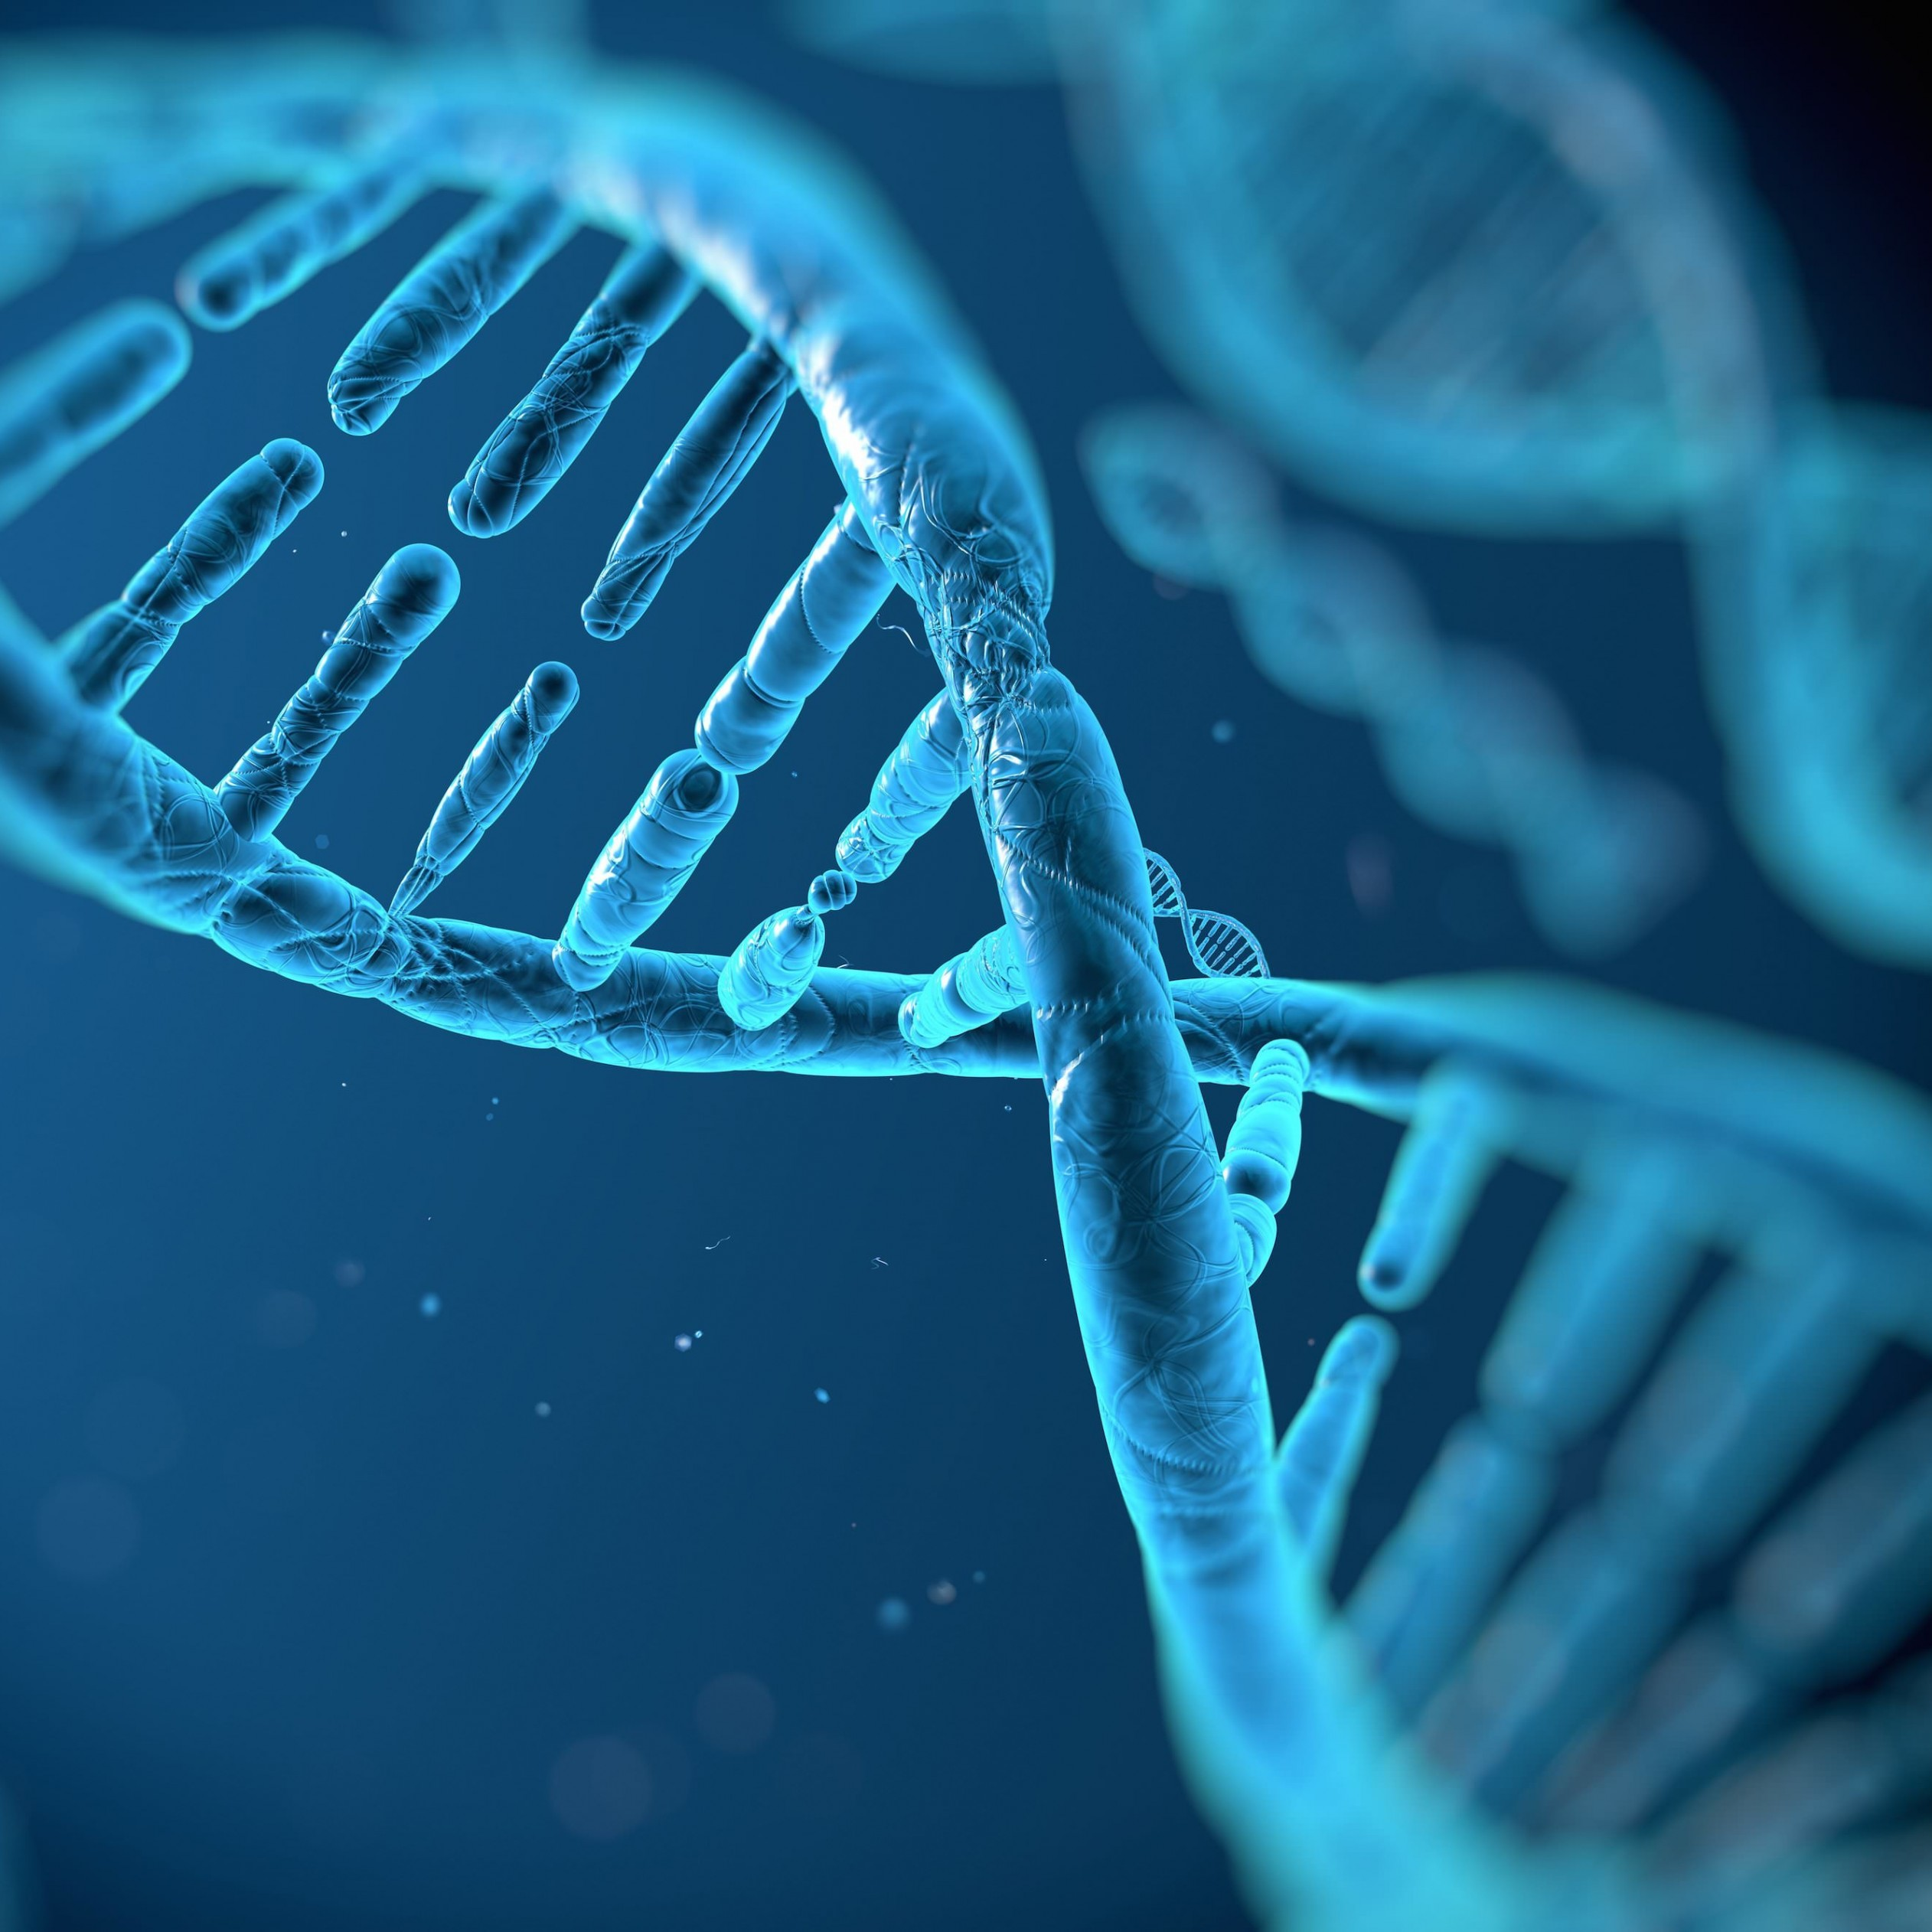 DNA Structure Wallpaper for Apple iPad 3